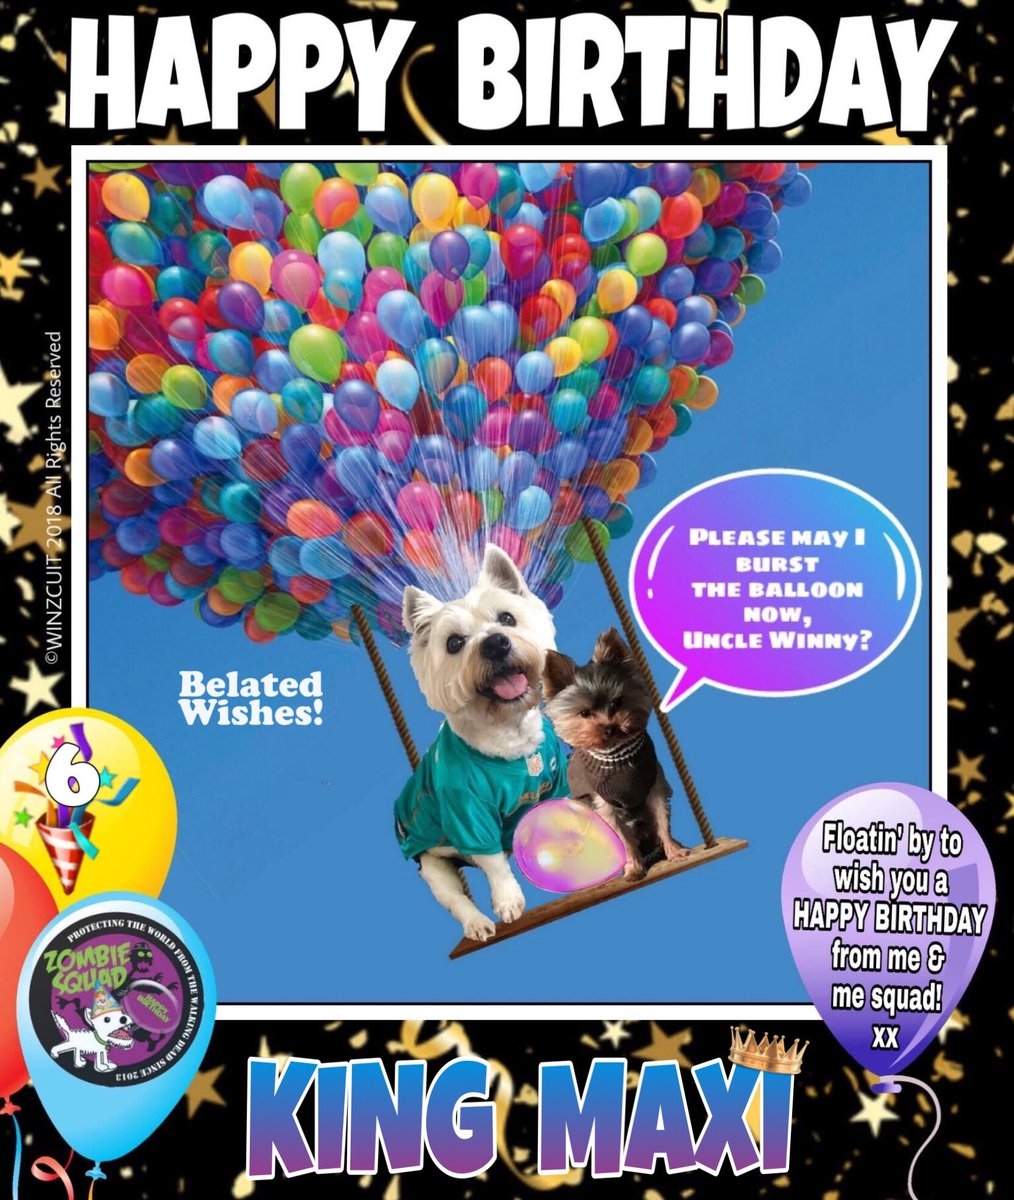 🎂Wishing a BELATED 🎁HAPPY 6th BIRTHDAY🎉 to our pawsome pal, MAXI👑 from Leada Billy & your ZombieSquad pals. Sorry we missed your special day on 27 August... we hope it was full of tasty treats, belly rubs & cayke, soldyer. RaaAAA!! 💜🎂🎁🎉 @Bigmaxmastiff @ZombieSquadHQ #ZSHQ https://t.co/7gpXe22aXb